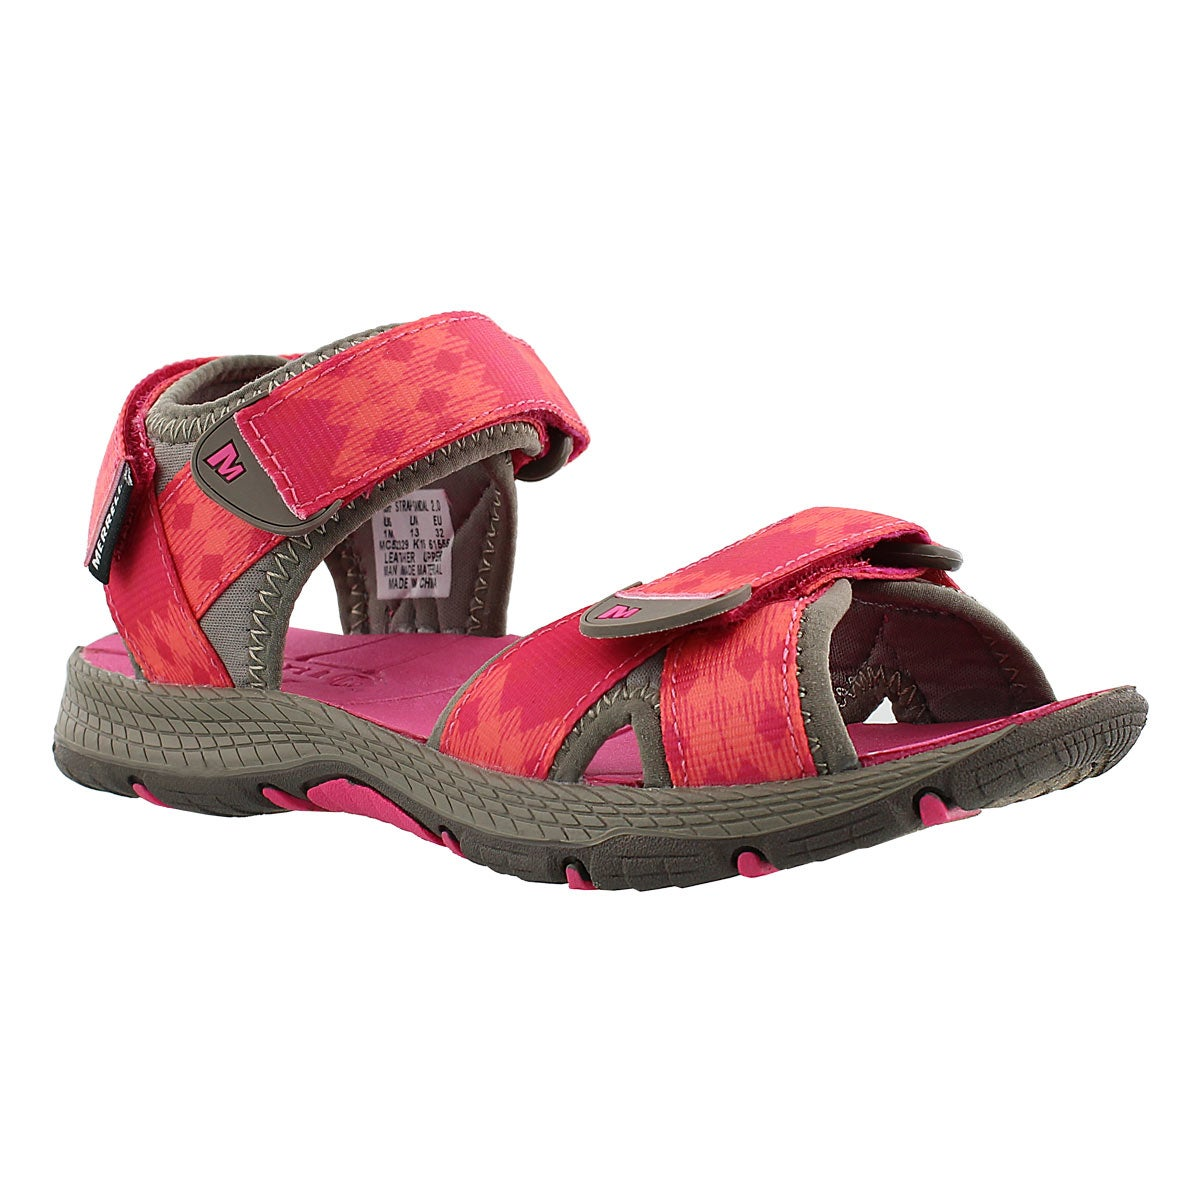 Girls' SURF STRAP 2.0 brown/pink sport sandals